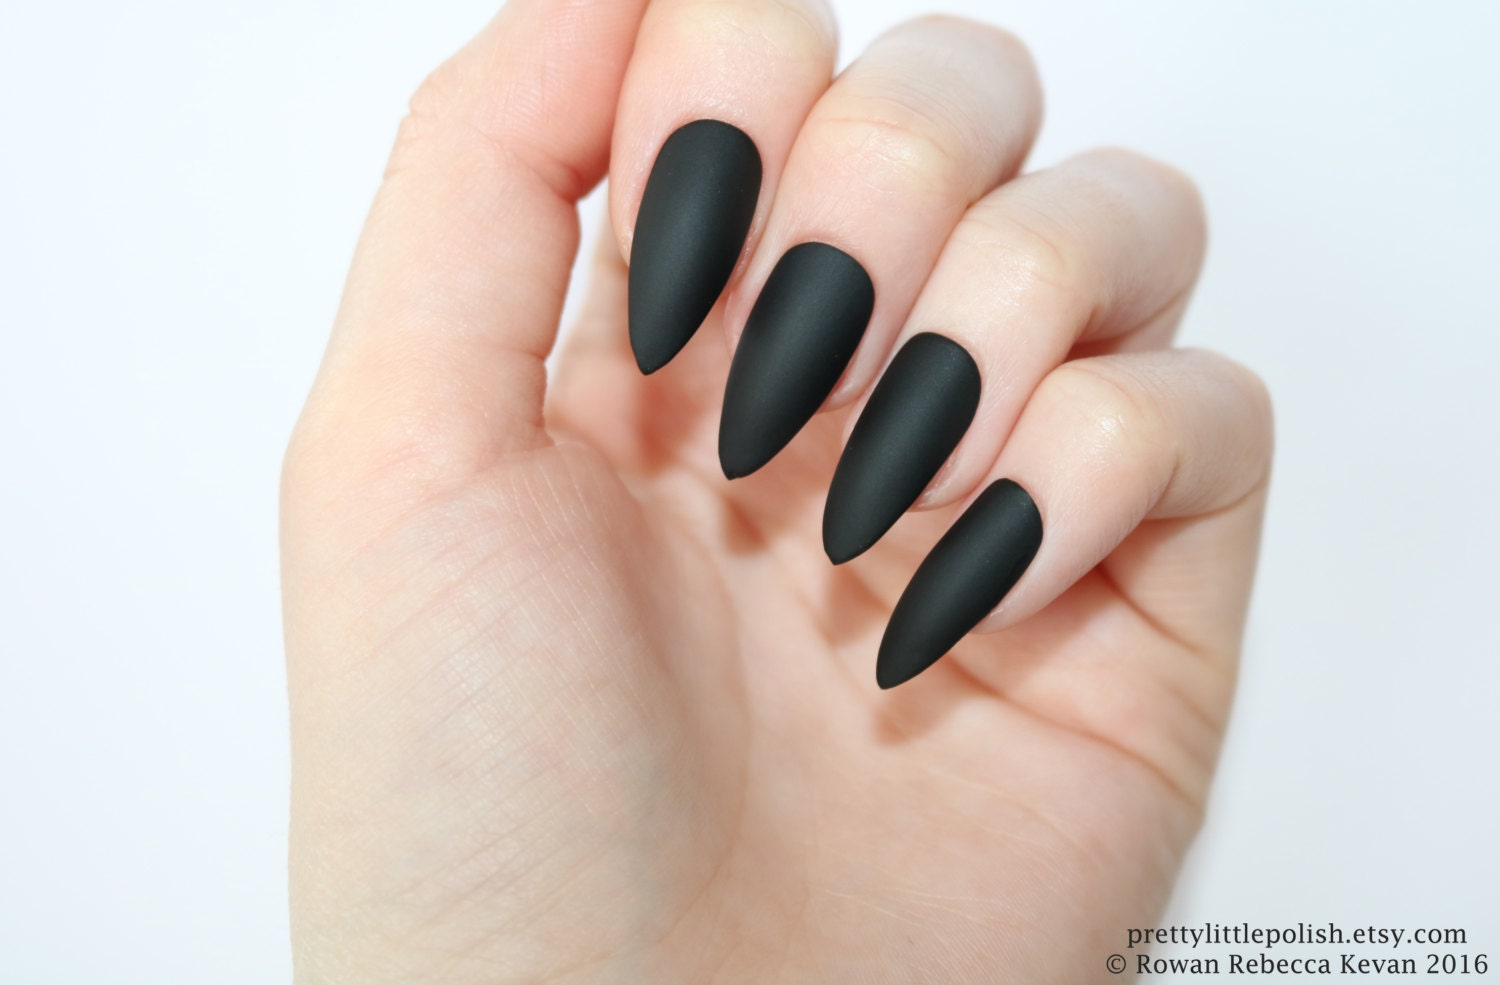 Stiletto nails Matte black stiletto nails Fake nails Press